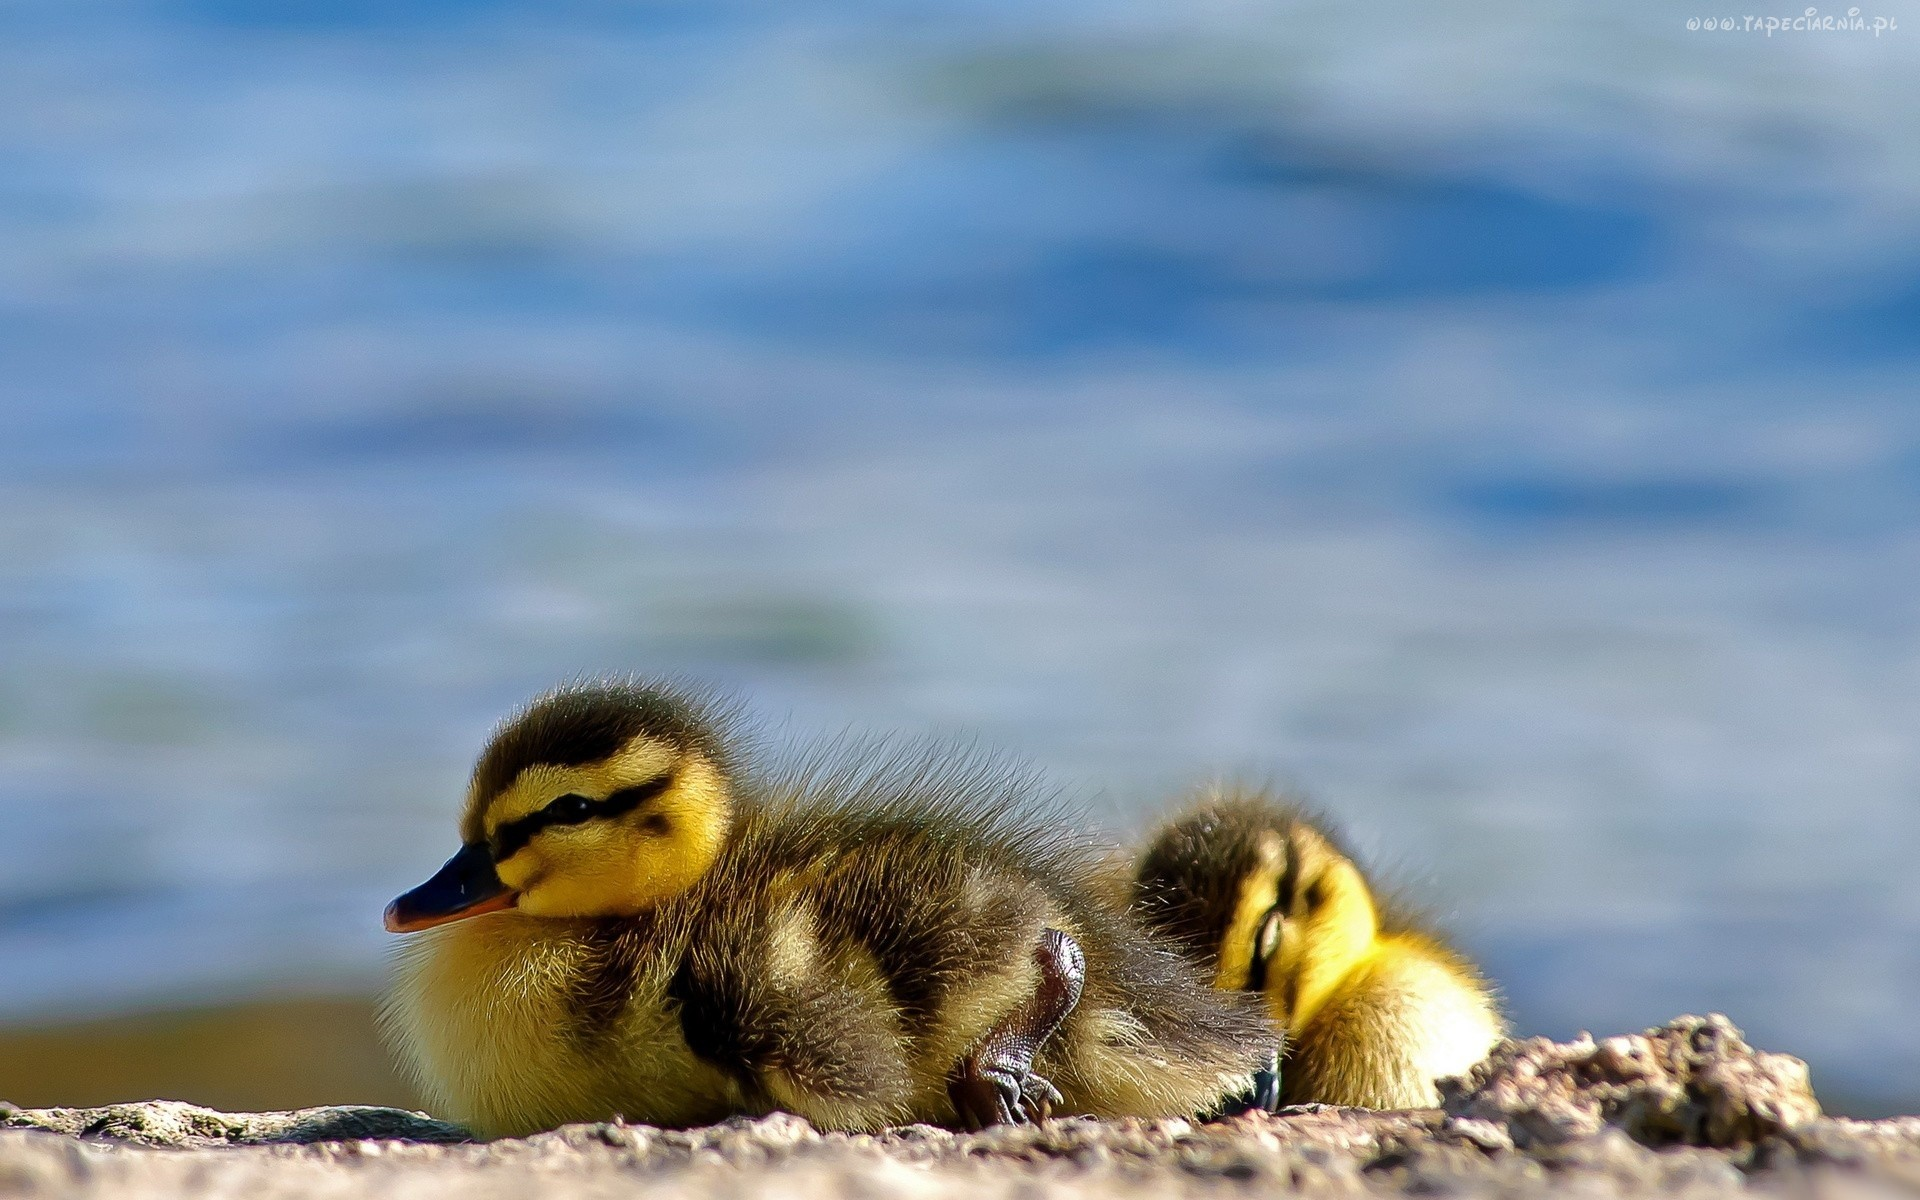 Cute ducklings 1